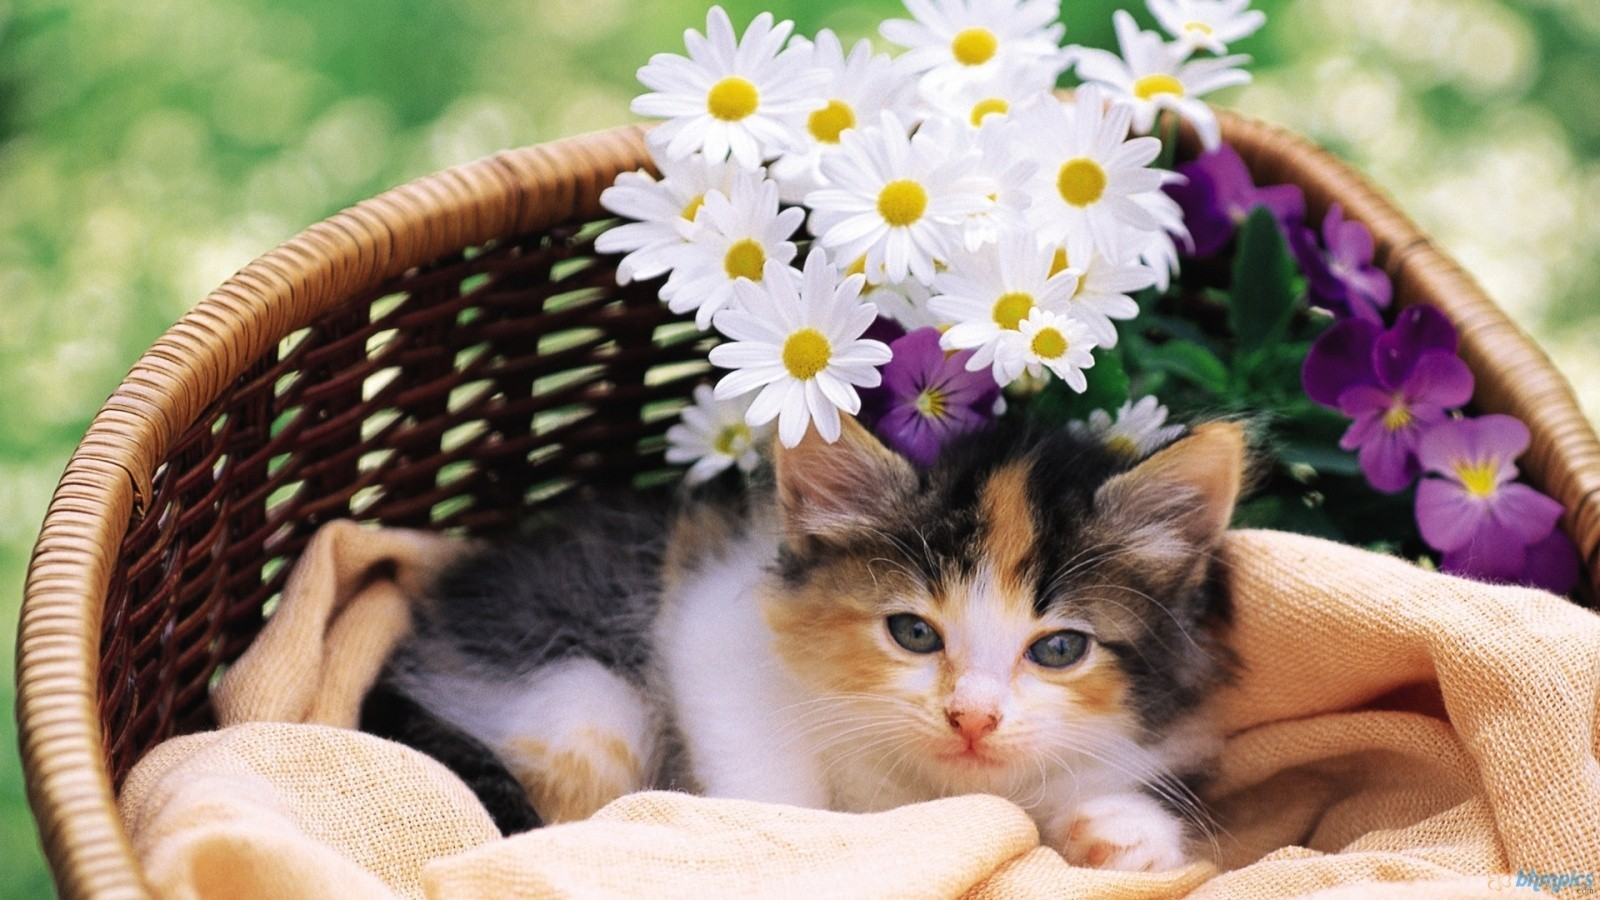 Download Cat And Flower In Basket Wallpaper HQ Backgrounds HD 1600x900